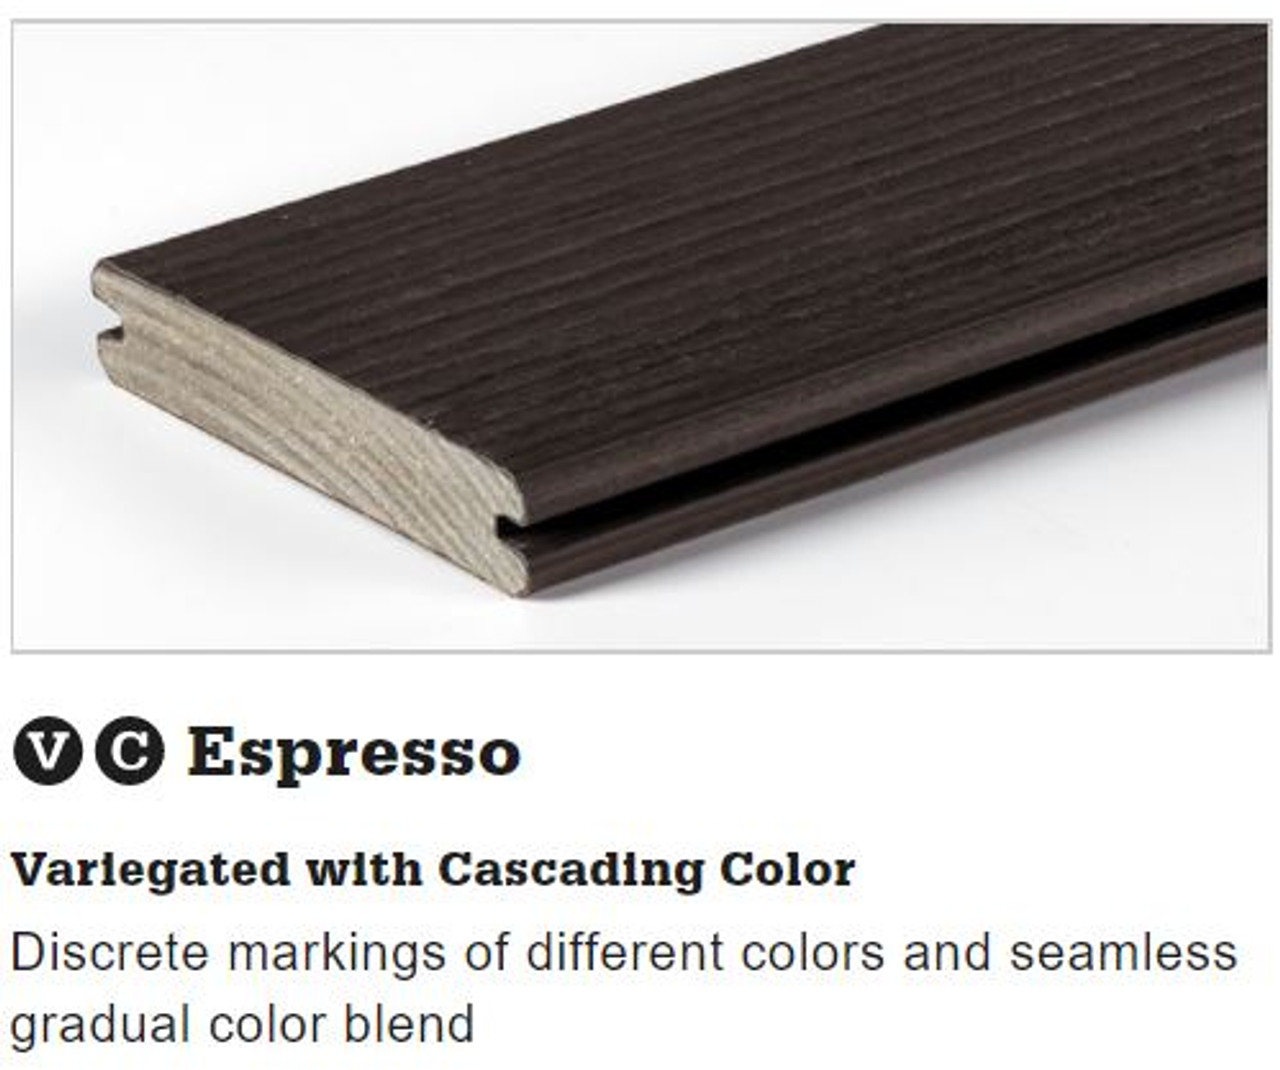 TimberTech Legacy Grooved Decking in Espresso